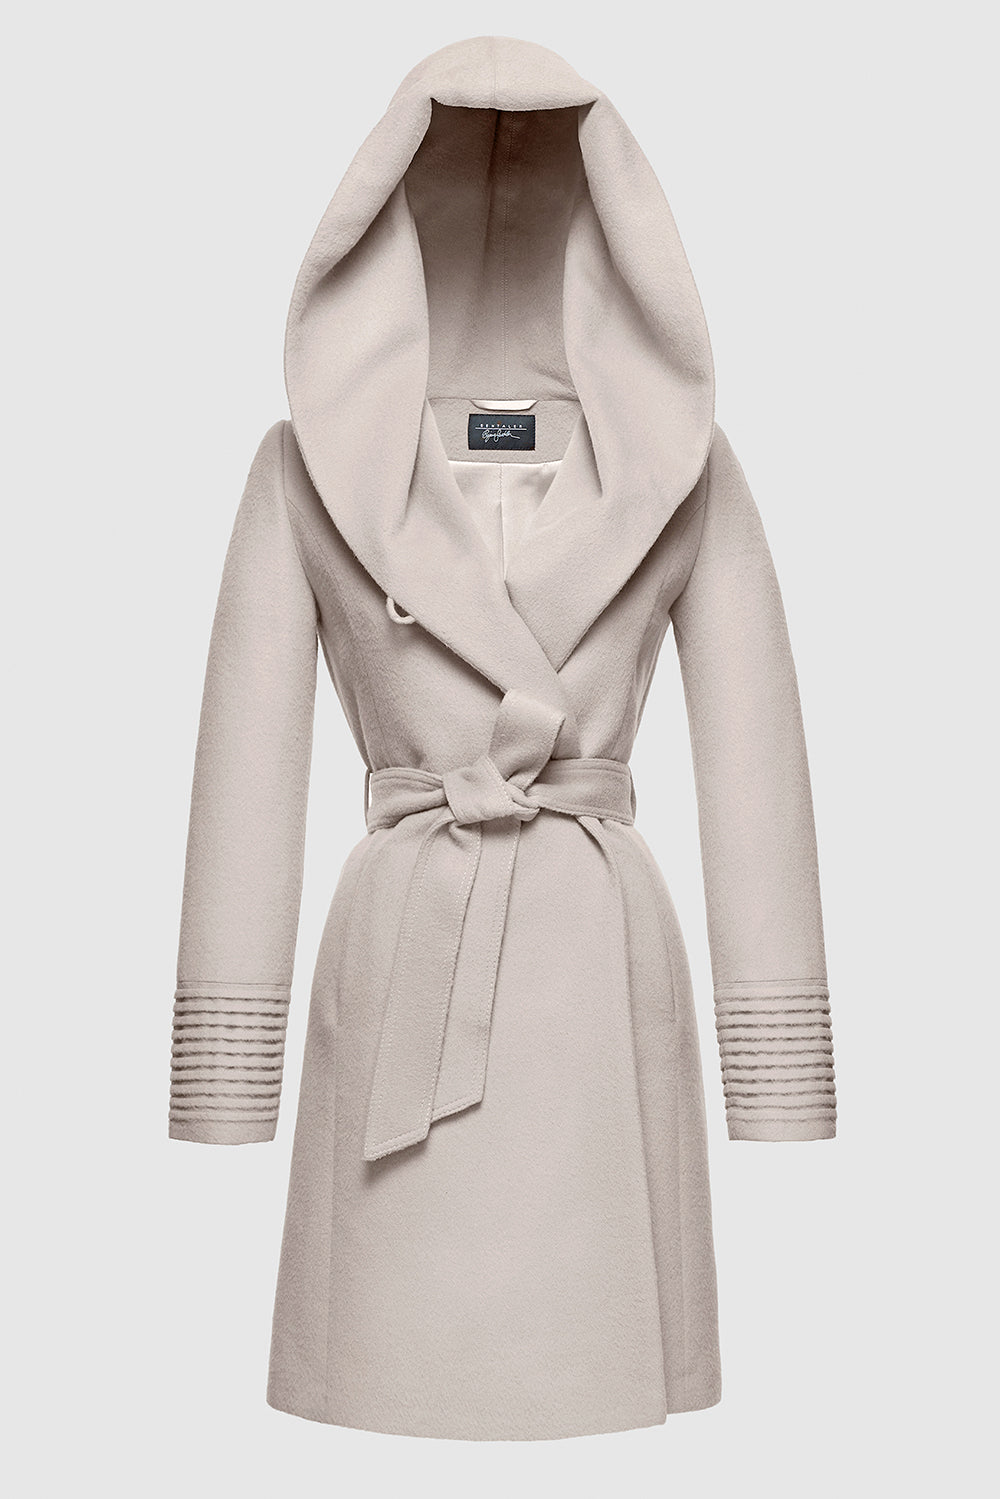 Sentaler Mid Length Hooded Wrap Coat featured in Baby Alpaca and available in Bleeker Beige. Seen off model.